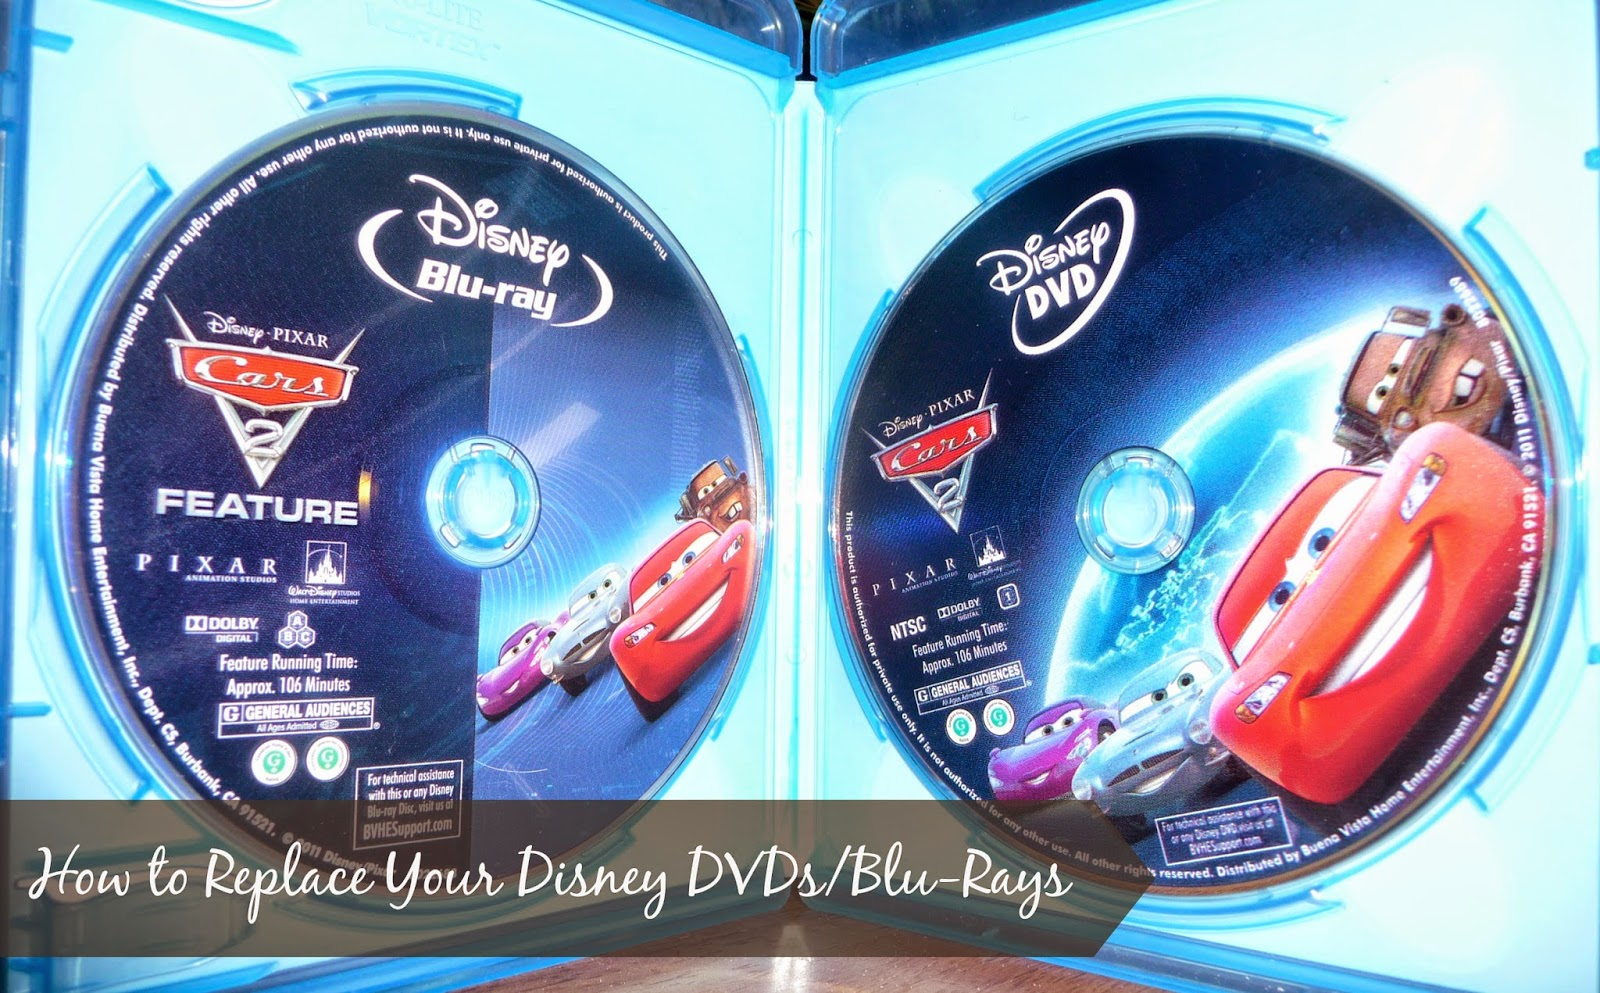 how to replace Disney movies without going to the store and buying a new one,